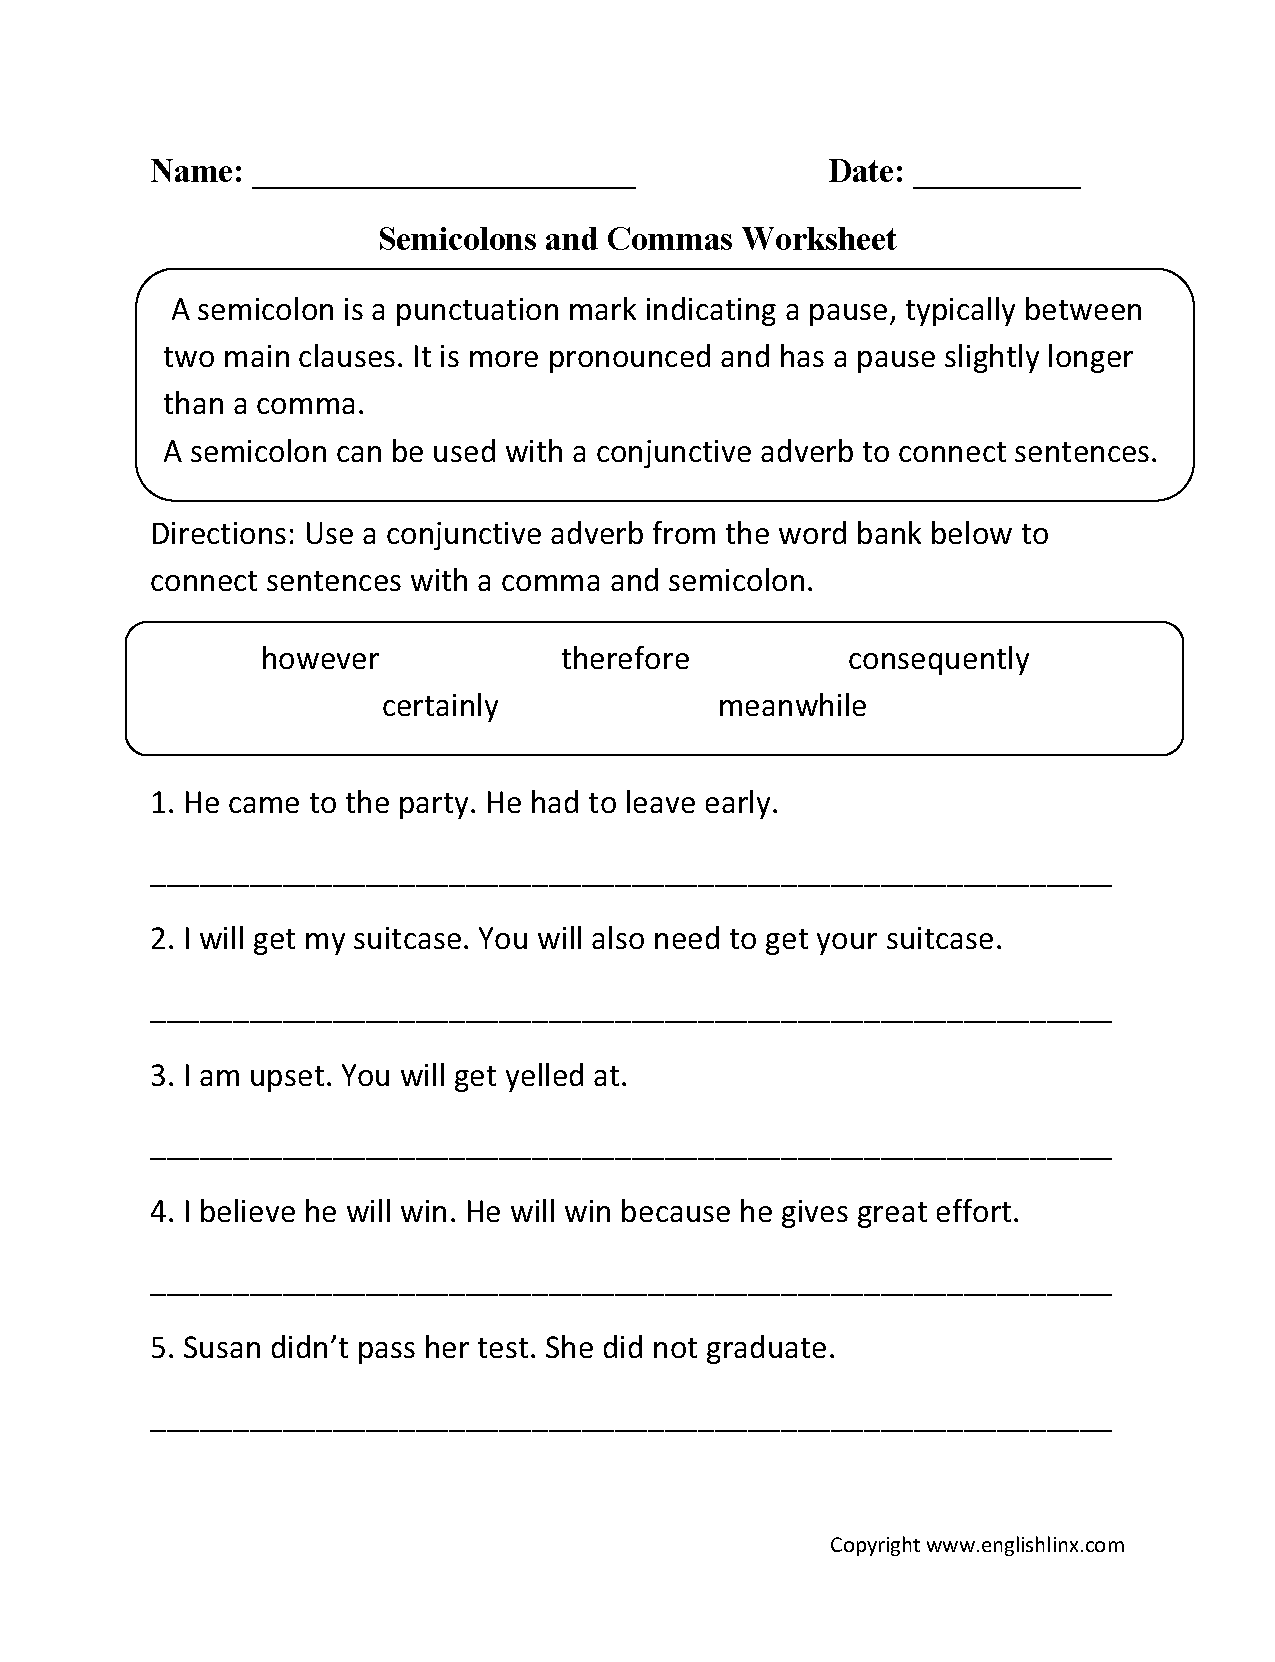 Worksheets 3rd Grade Punctuation Worksheets punctuation worksheets semicolon worksheet